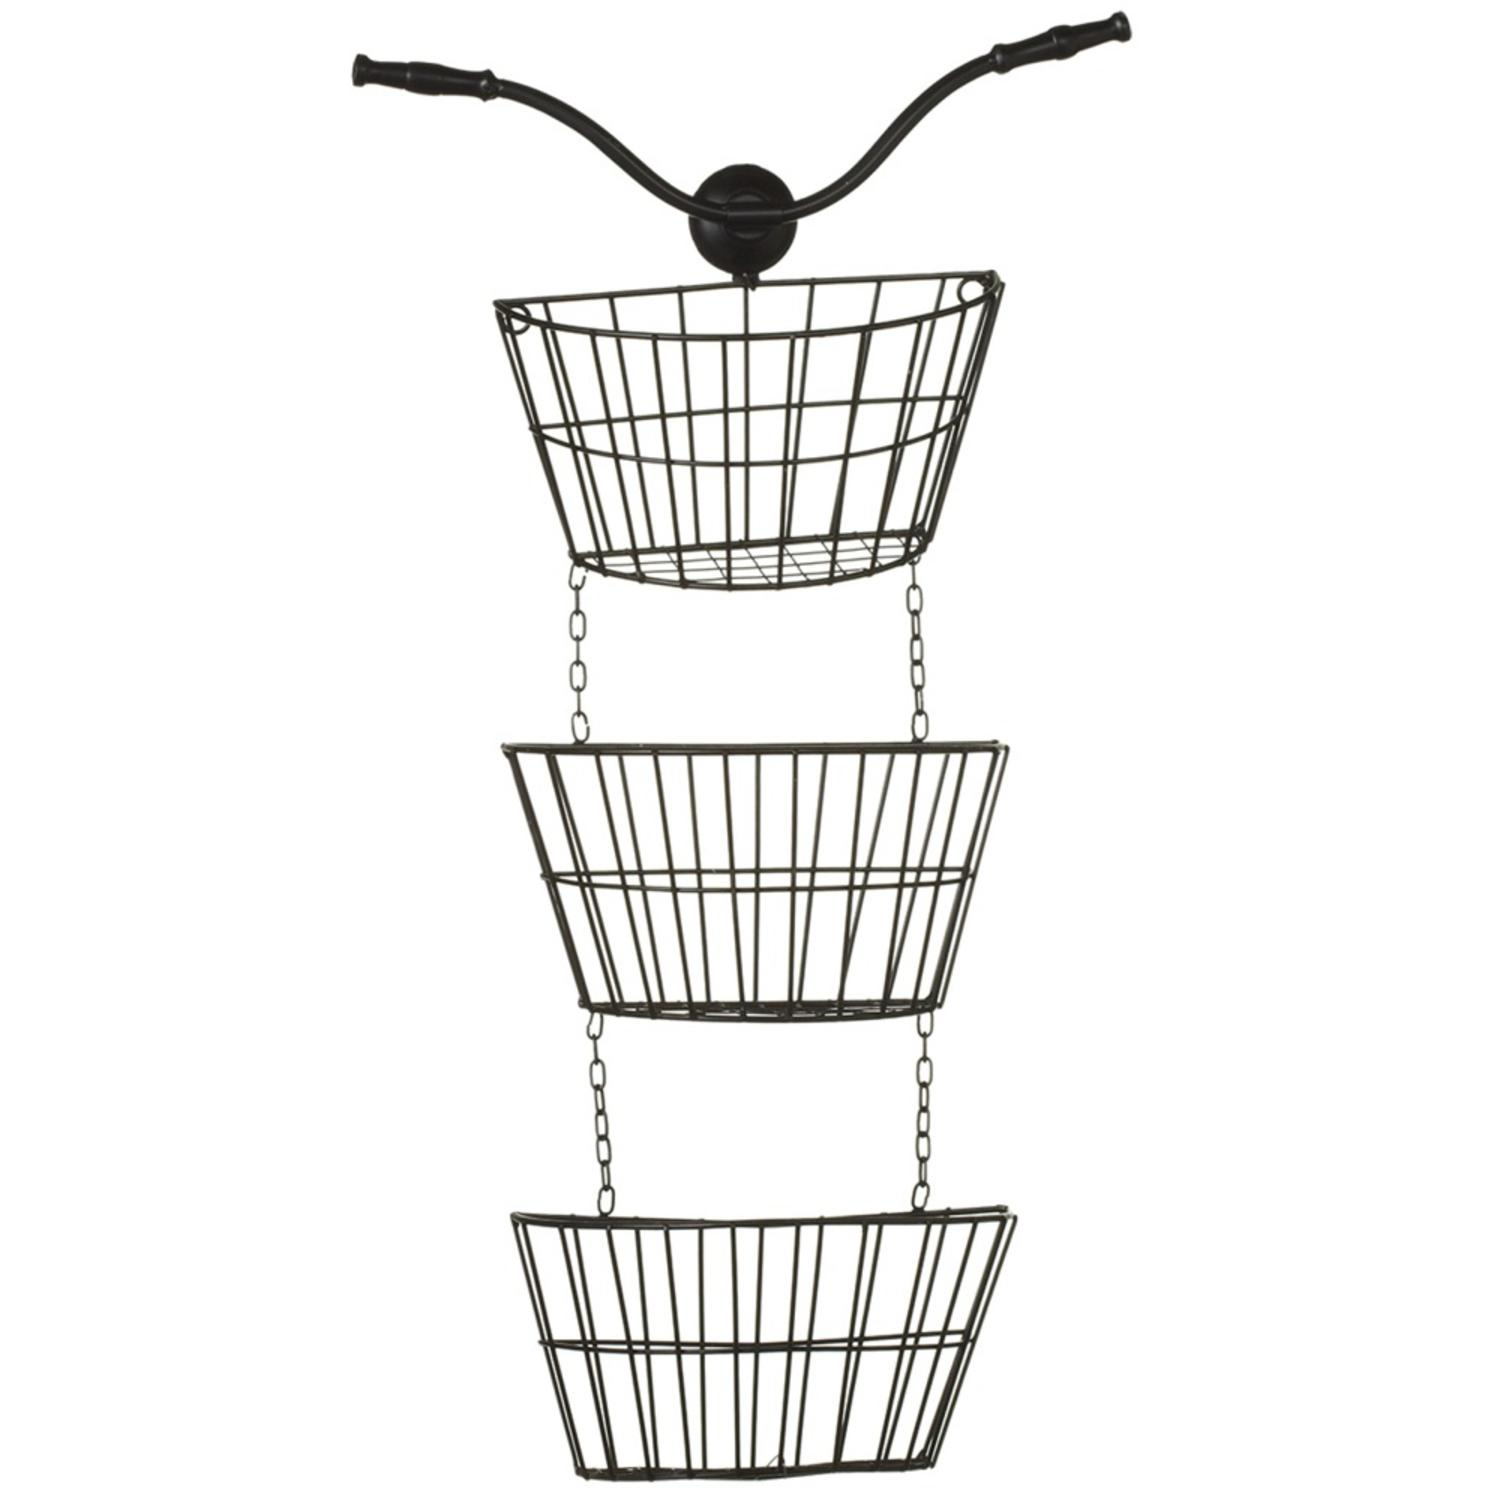 Black Bicycle Themed Metal Decorative Three Tier Hanging Wall Baskets 28""